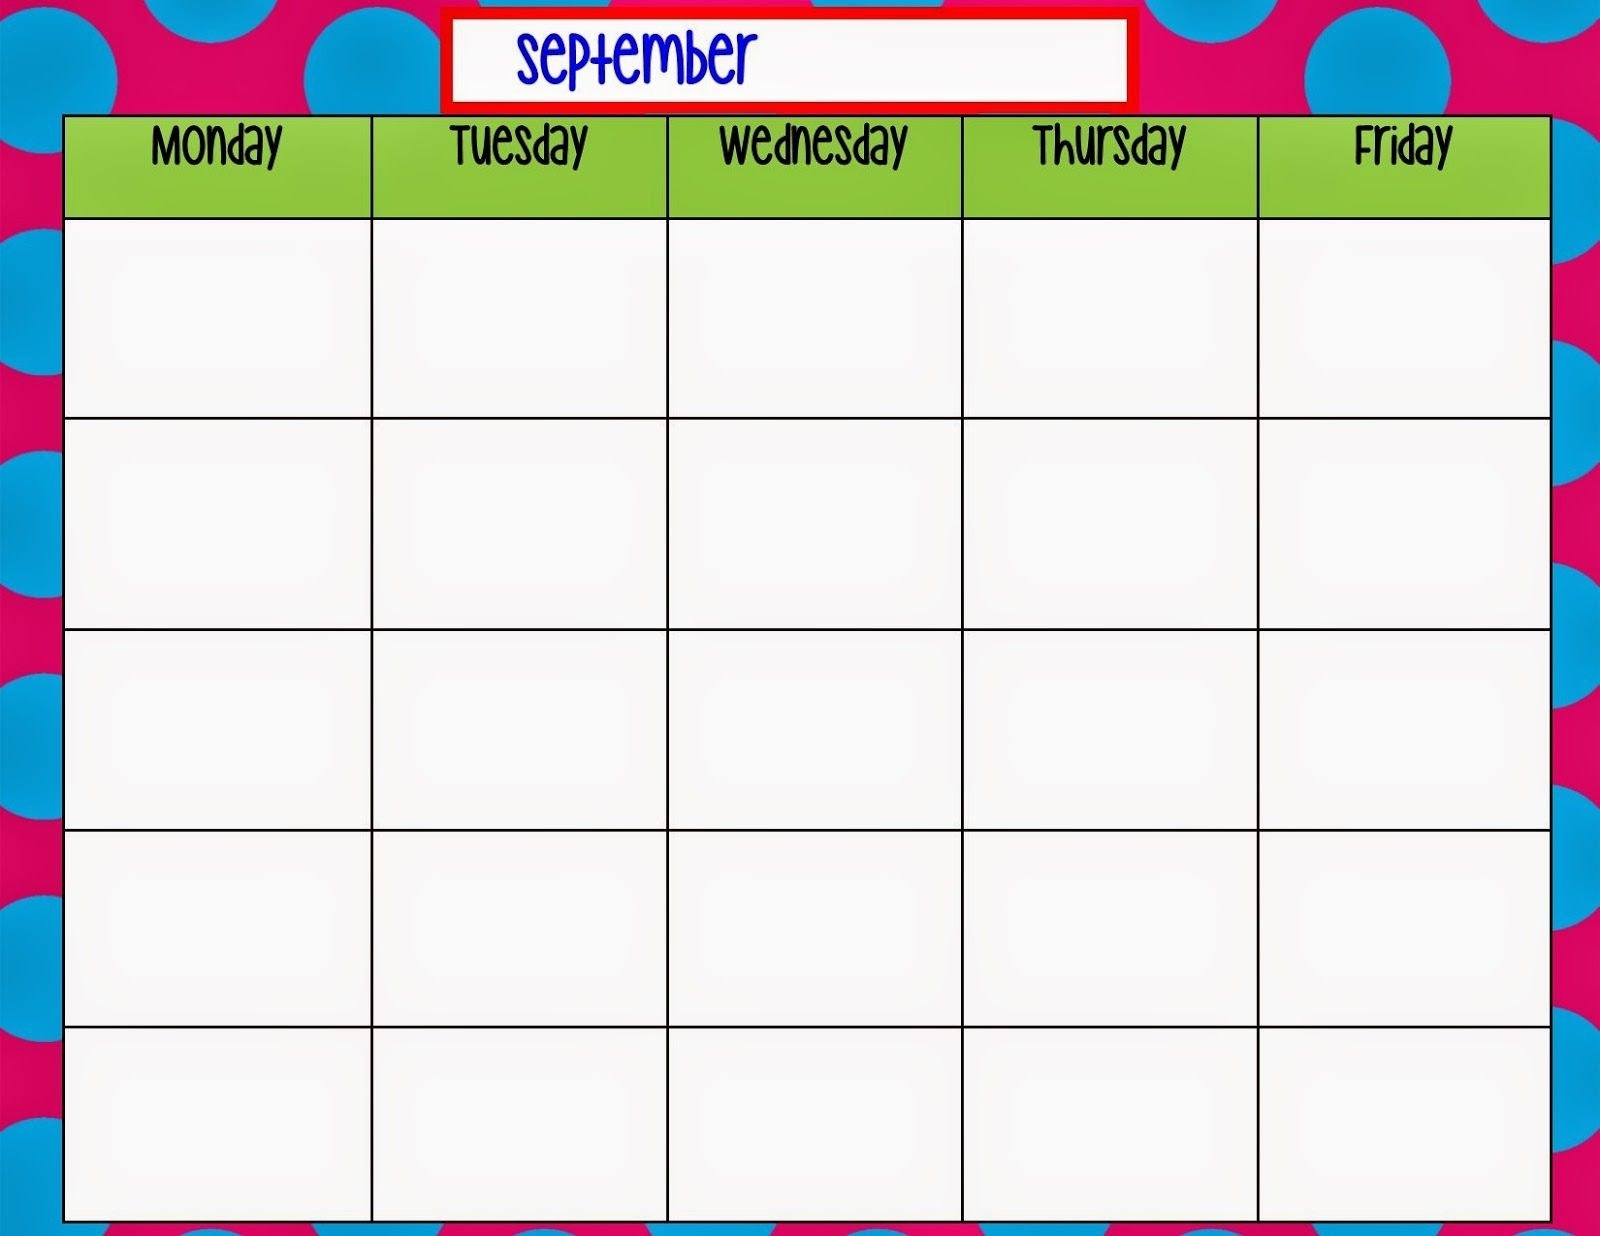 Monday Through Friday Calendar Template | Preschool | Printable in Printable Weekly Schedule Monday Through Friday